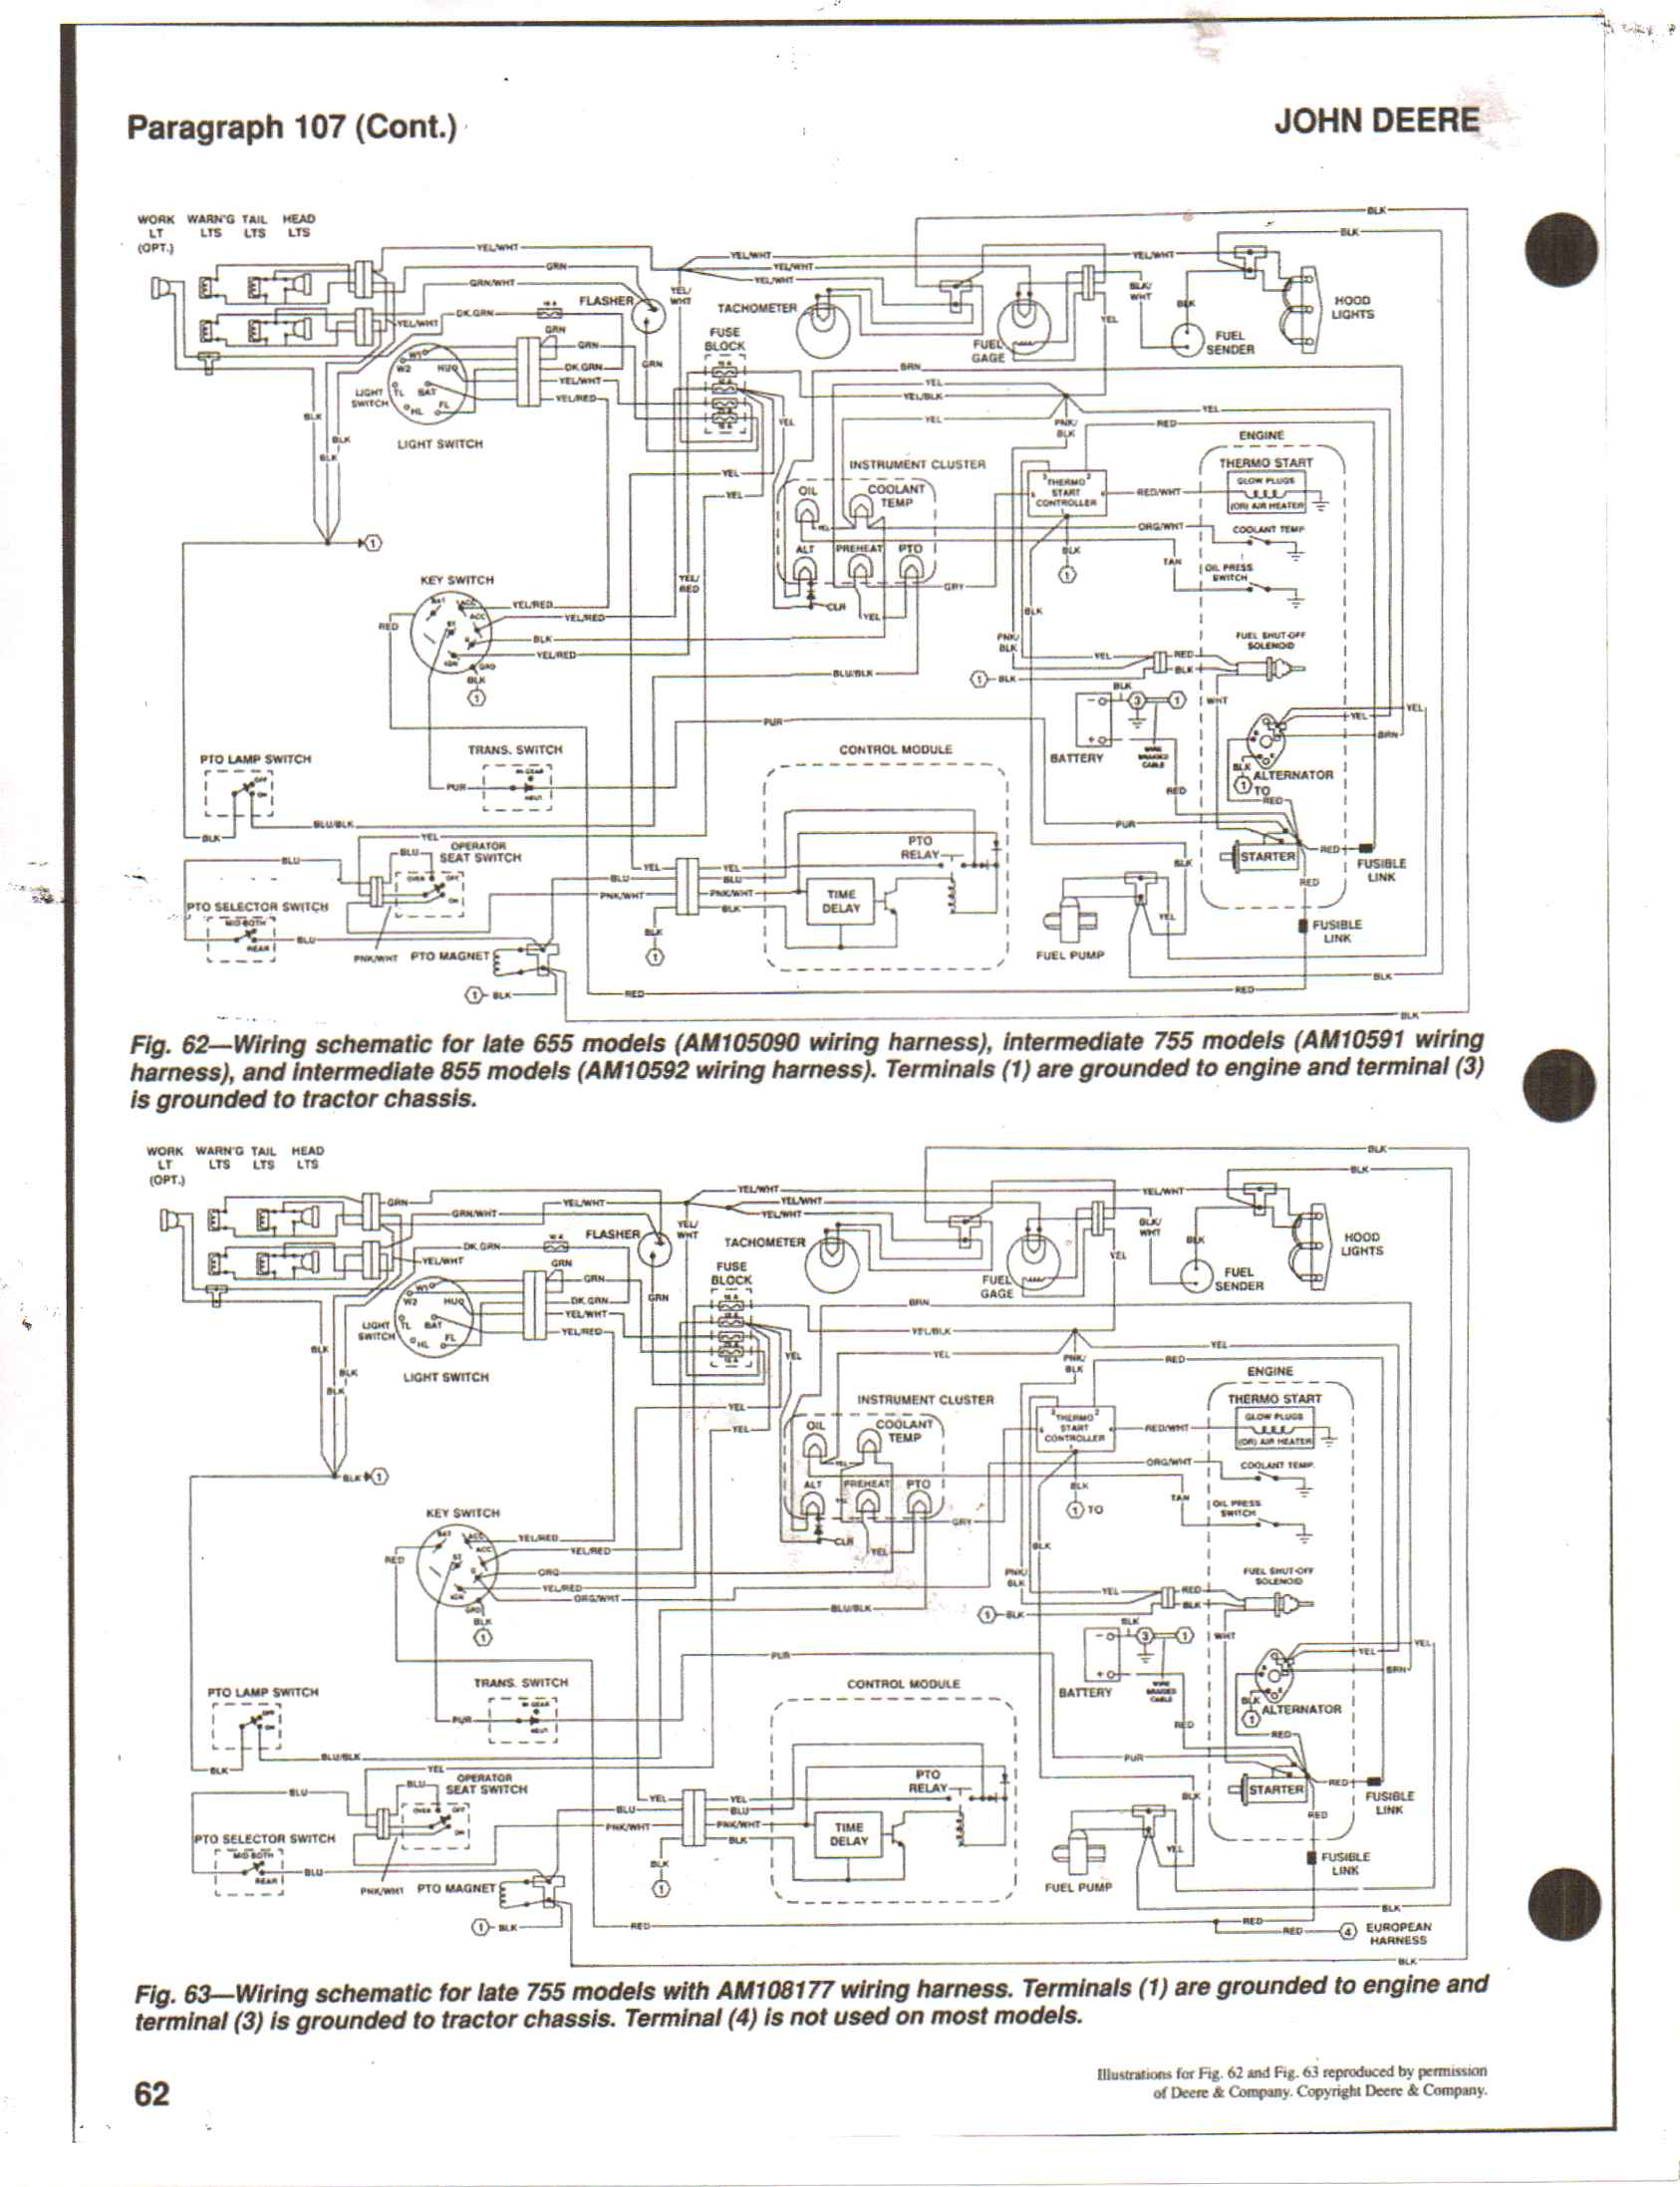 John Deere 955 Wiring Harness - Wiring Diagram M4 on